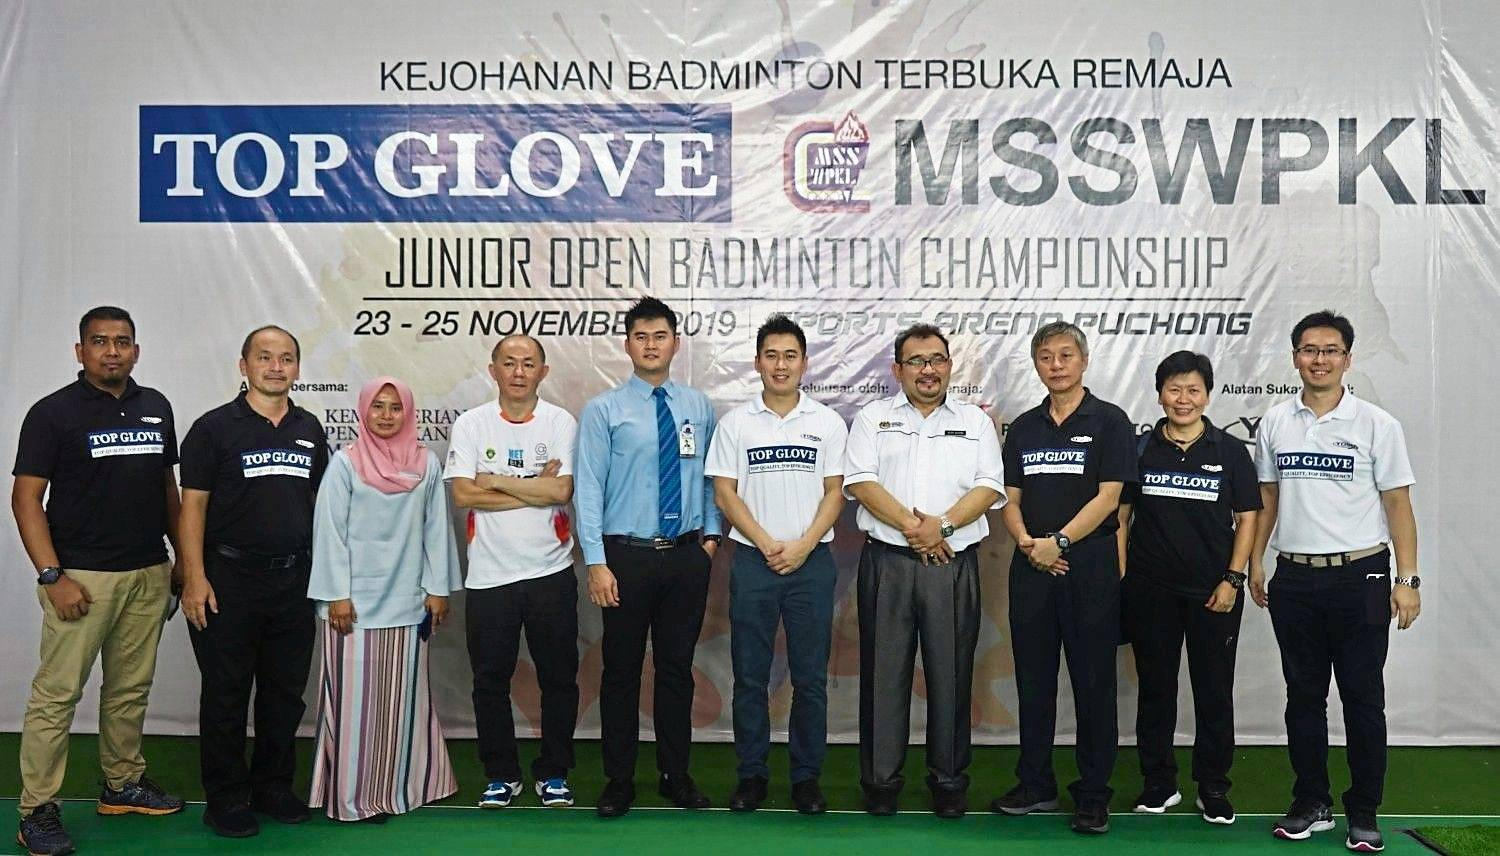 MSSWPKL Junior Open Badminton Championship 2019 organising committee and sponsors at the prize-giving  ceremony.